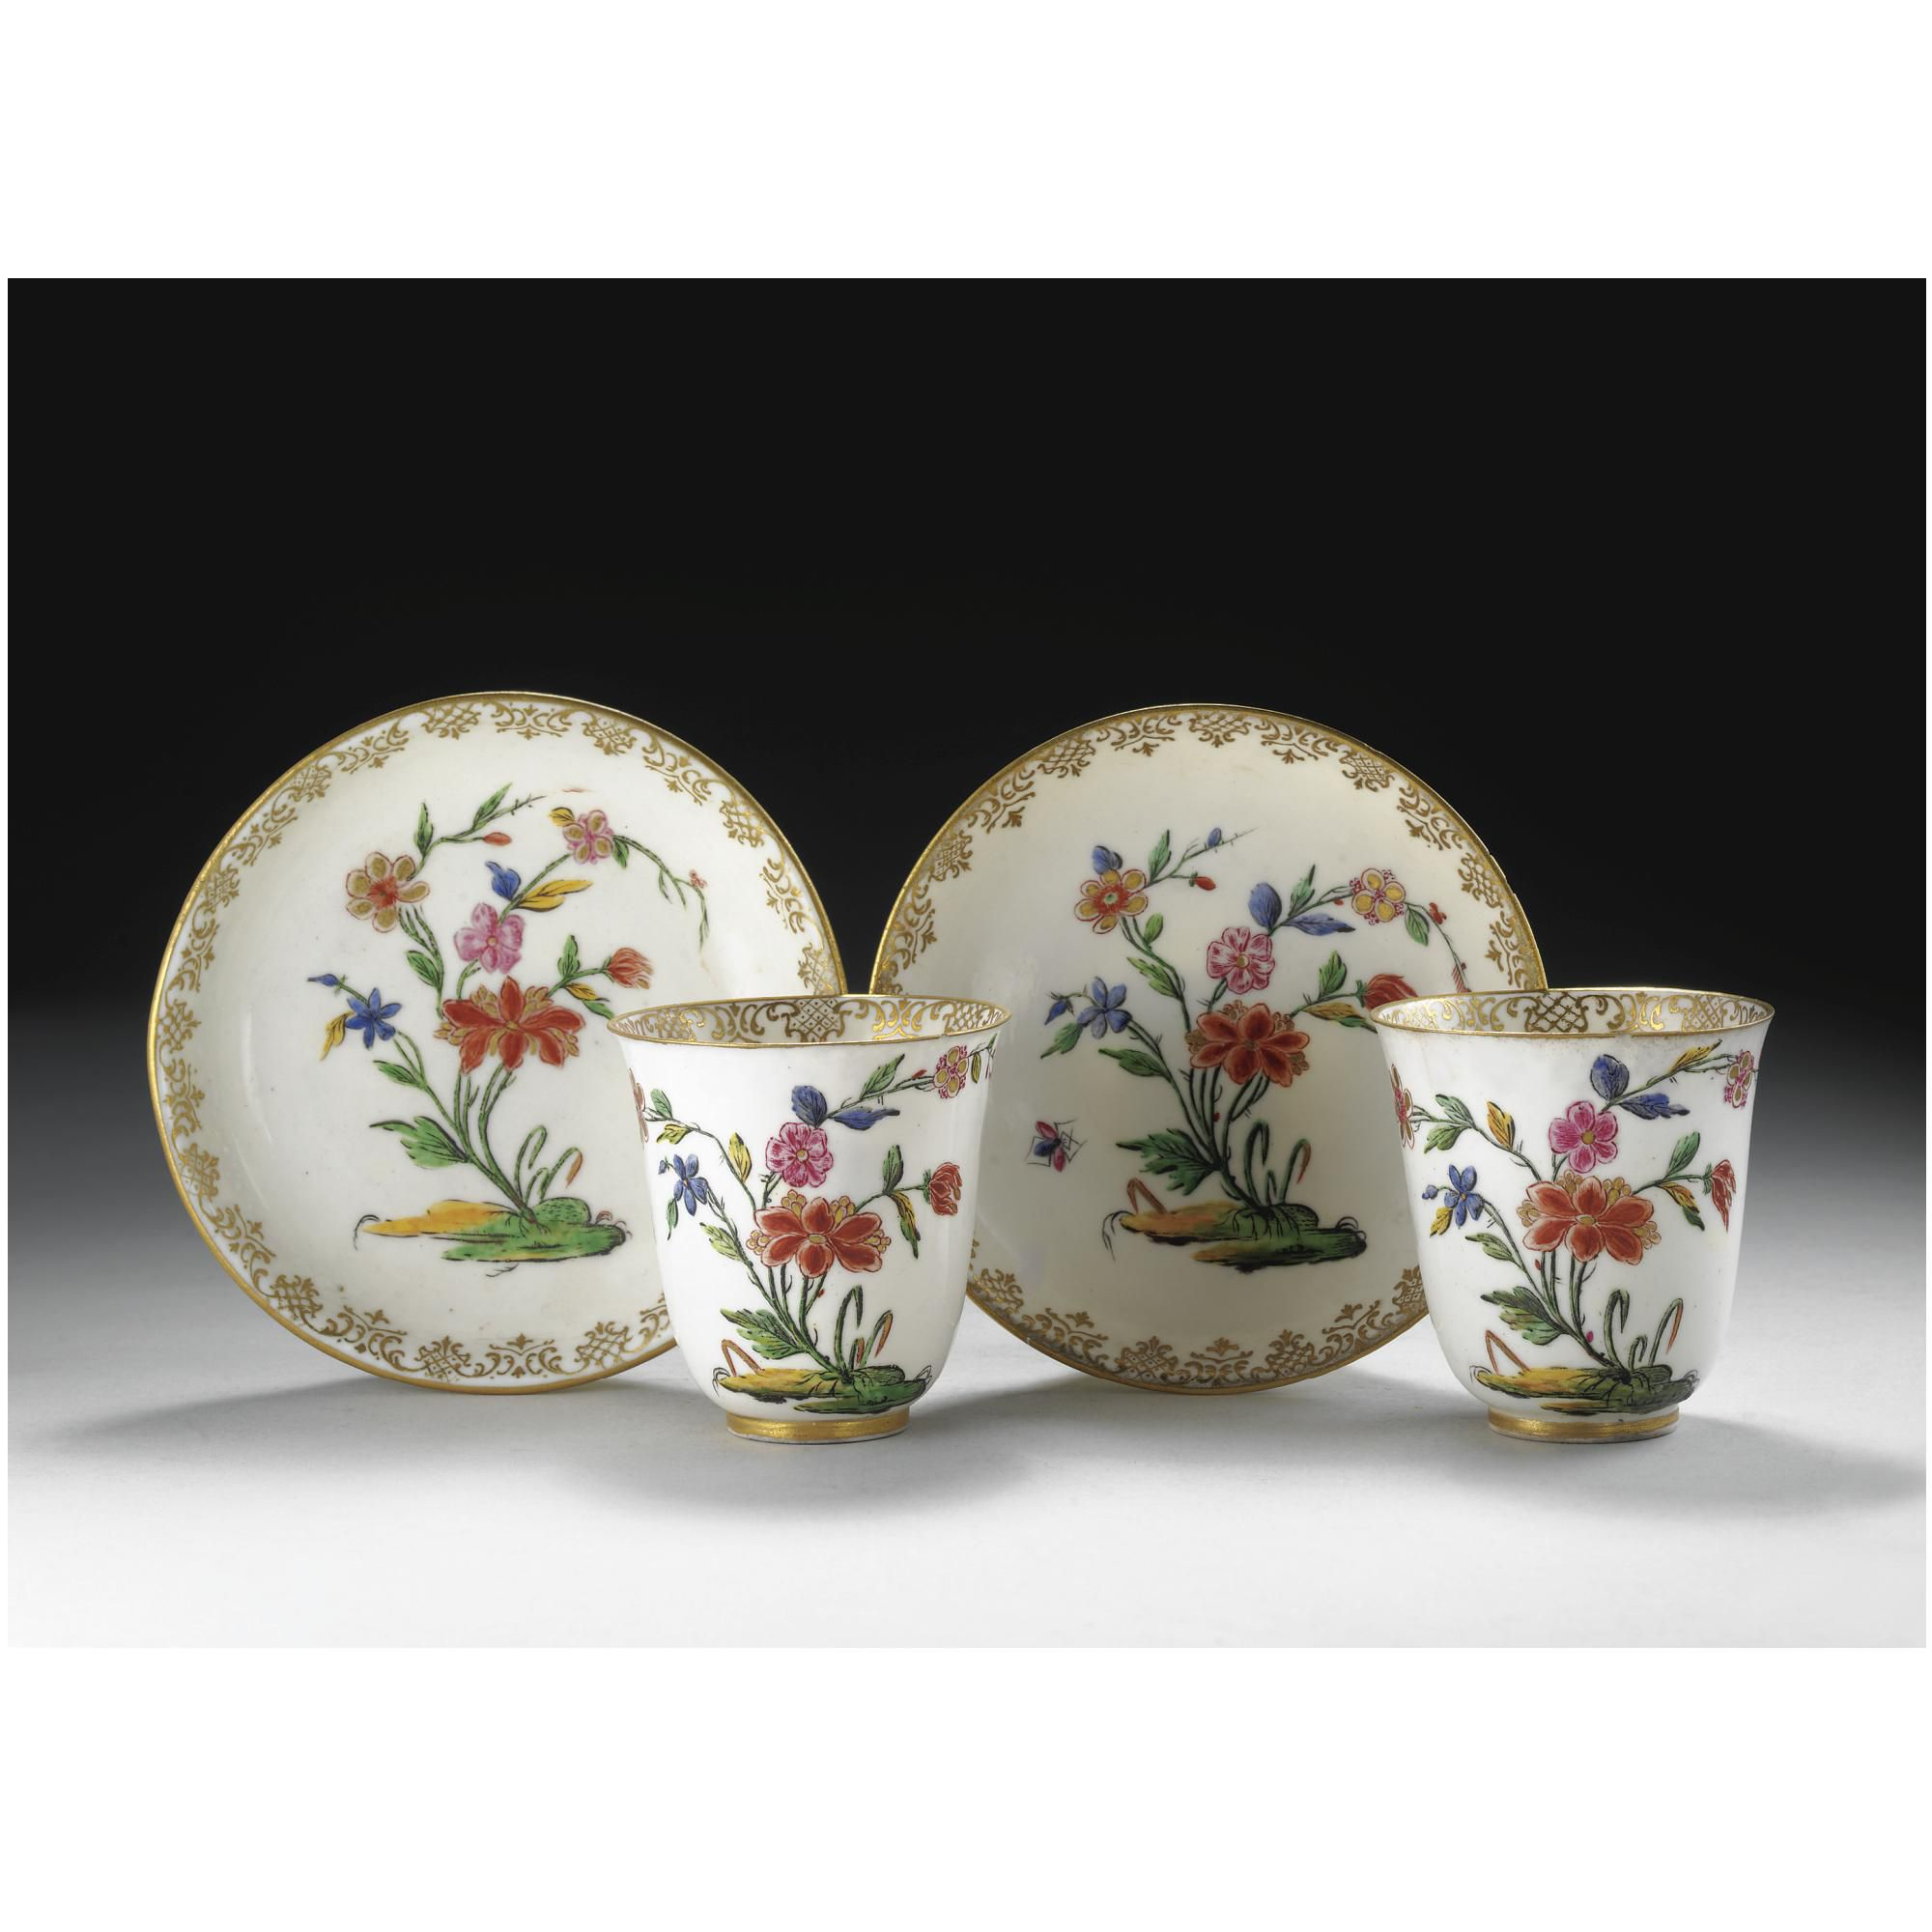 A PAIR OF CAPODIMONTE PORCELAIN CUPS AND SAUCERS, CIRCA